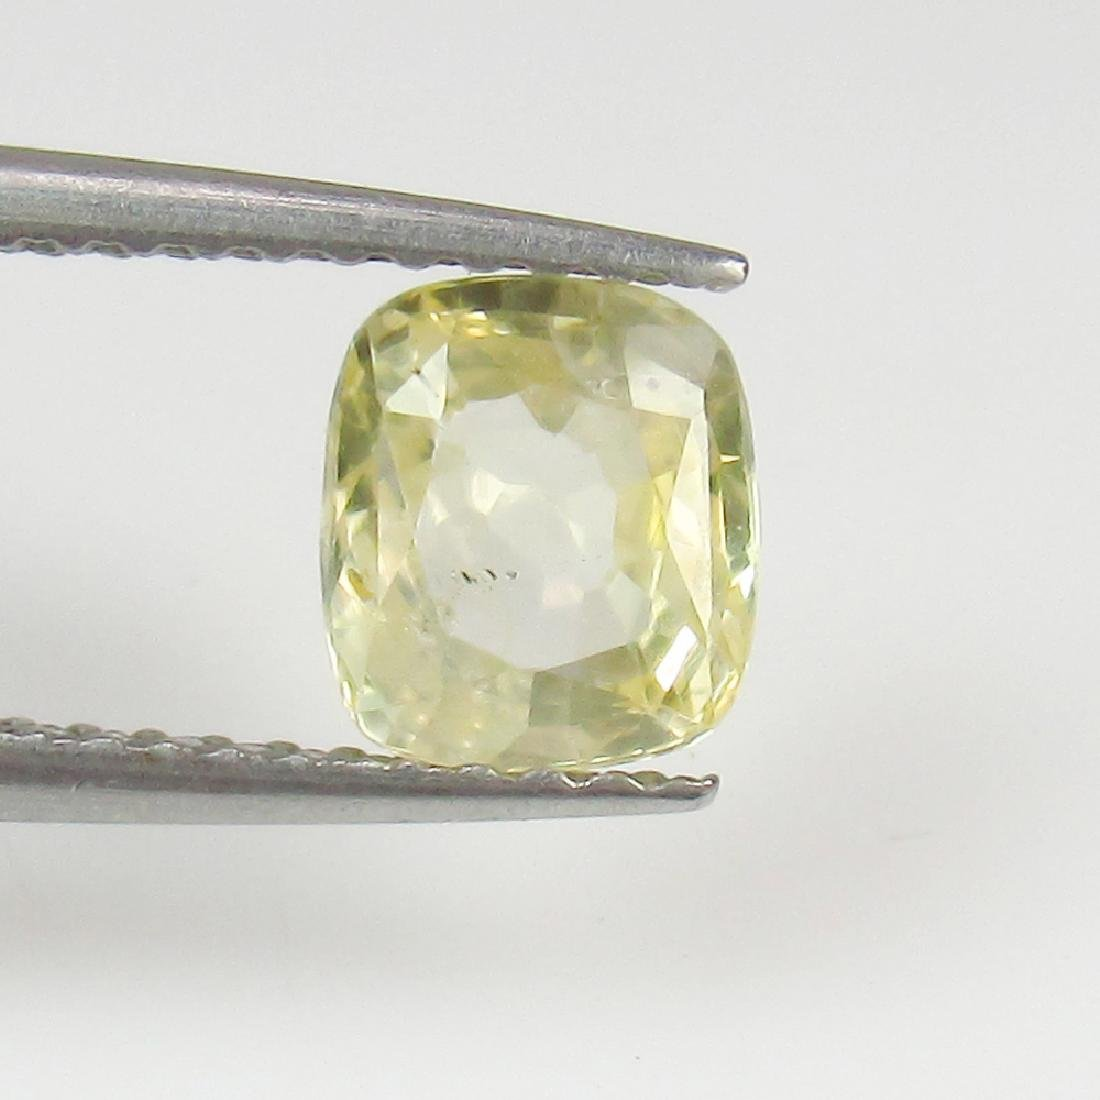 1.22 Ct Genuine Ceylon Unheated Yellow Sapphire Top